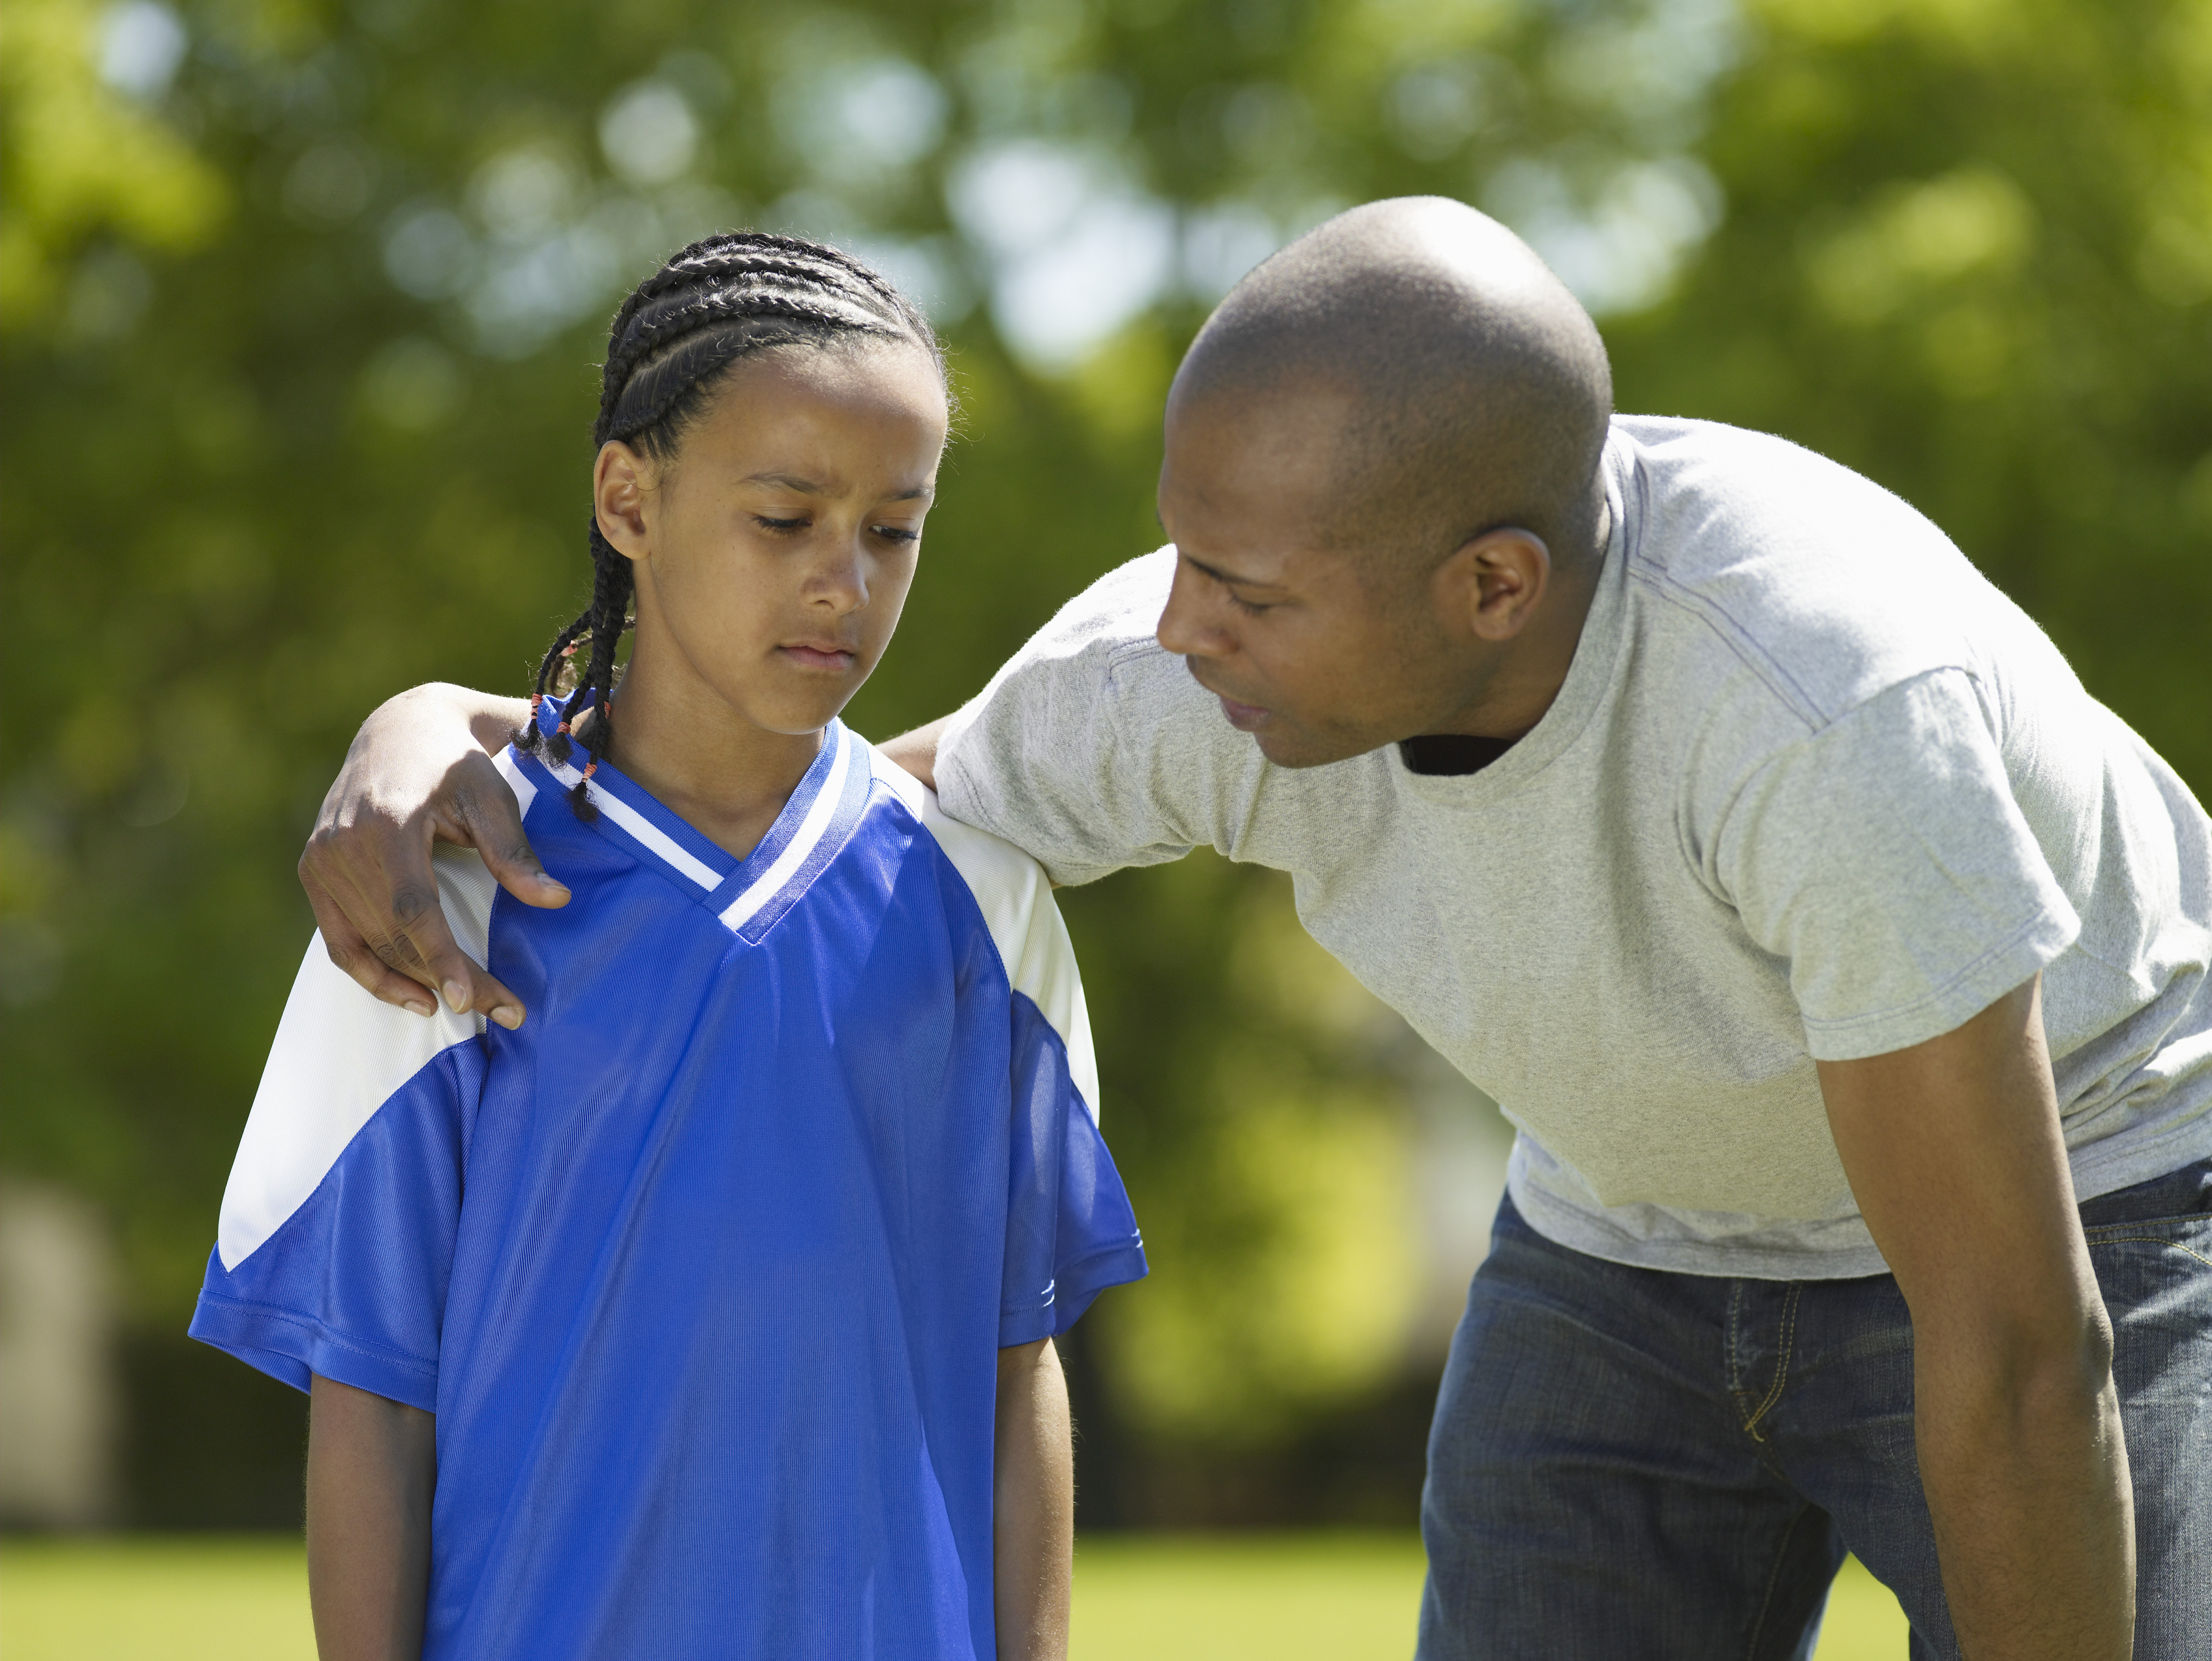 How Parents Put Children Off Their Game